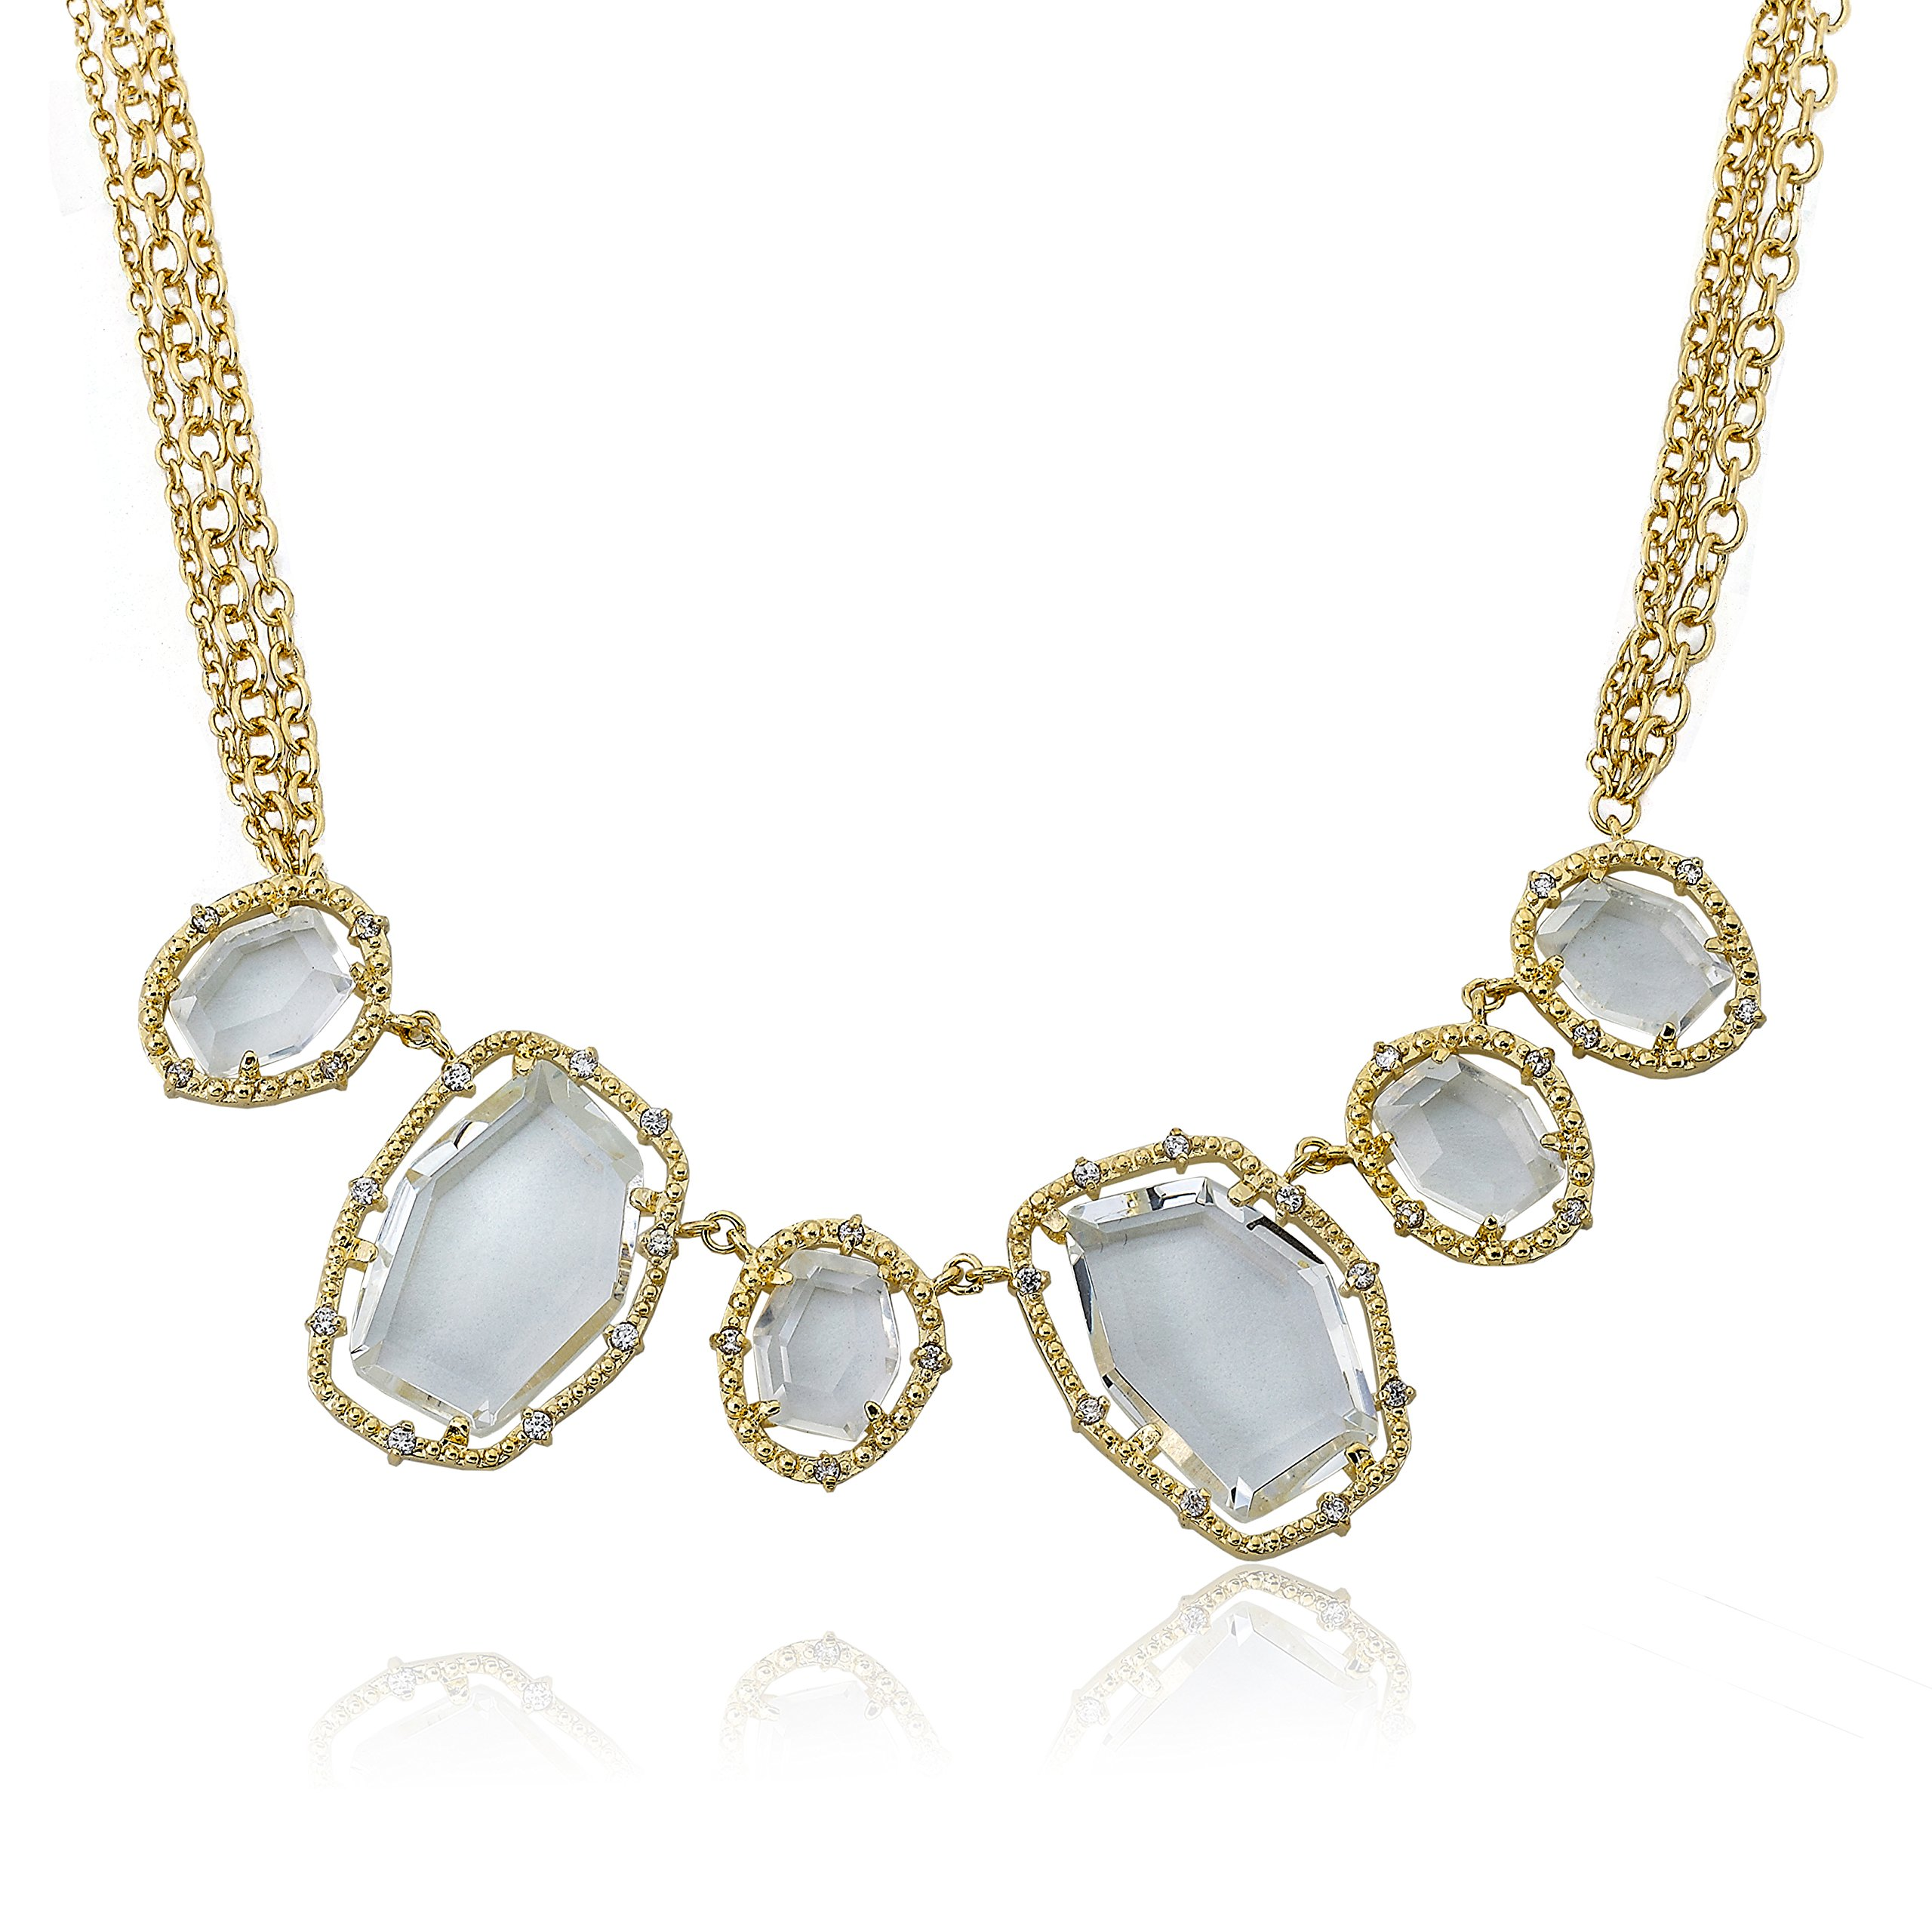 Riccova Sliced Glass 14k Gold-Plated Clear Sliced Glass Center Chain Necklace 16''/2'' by Riccova